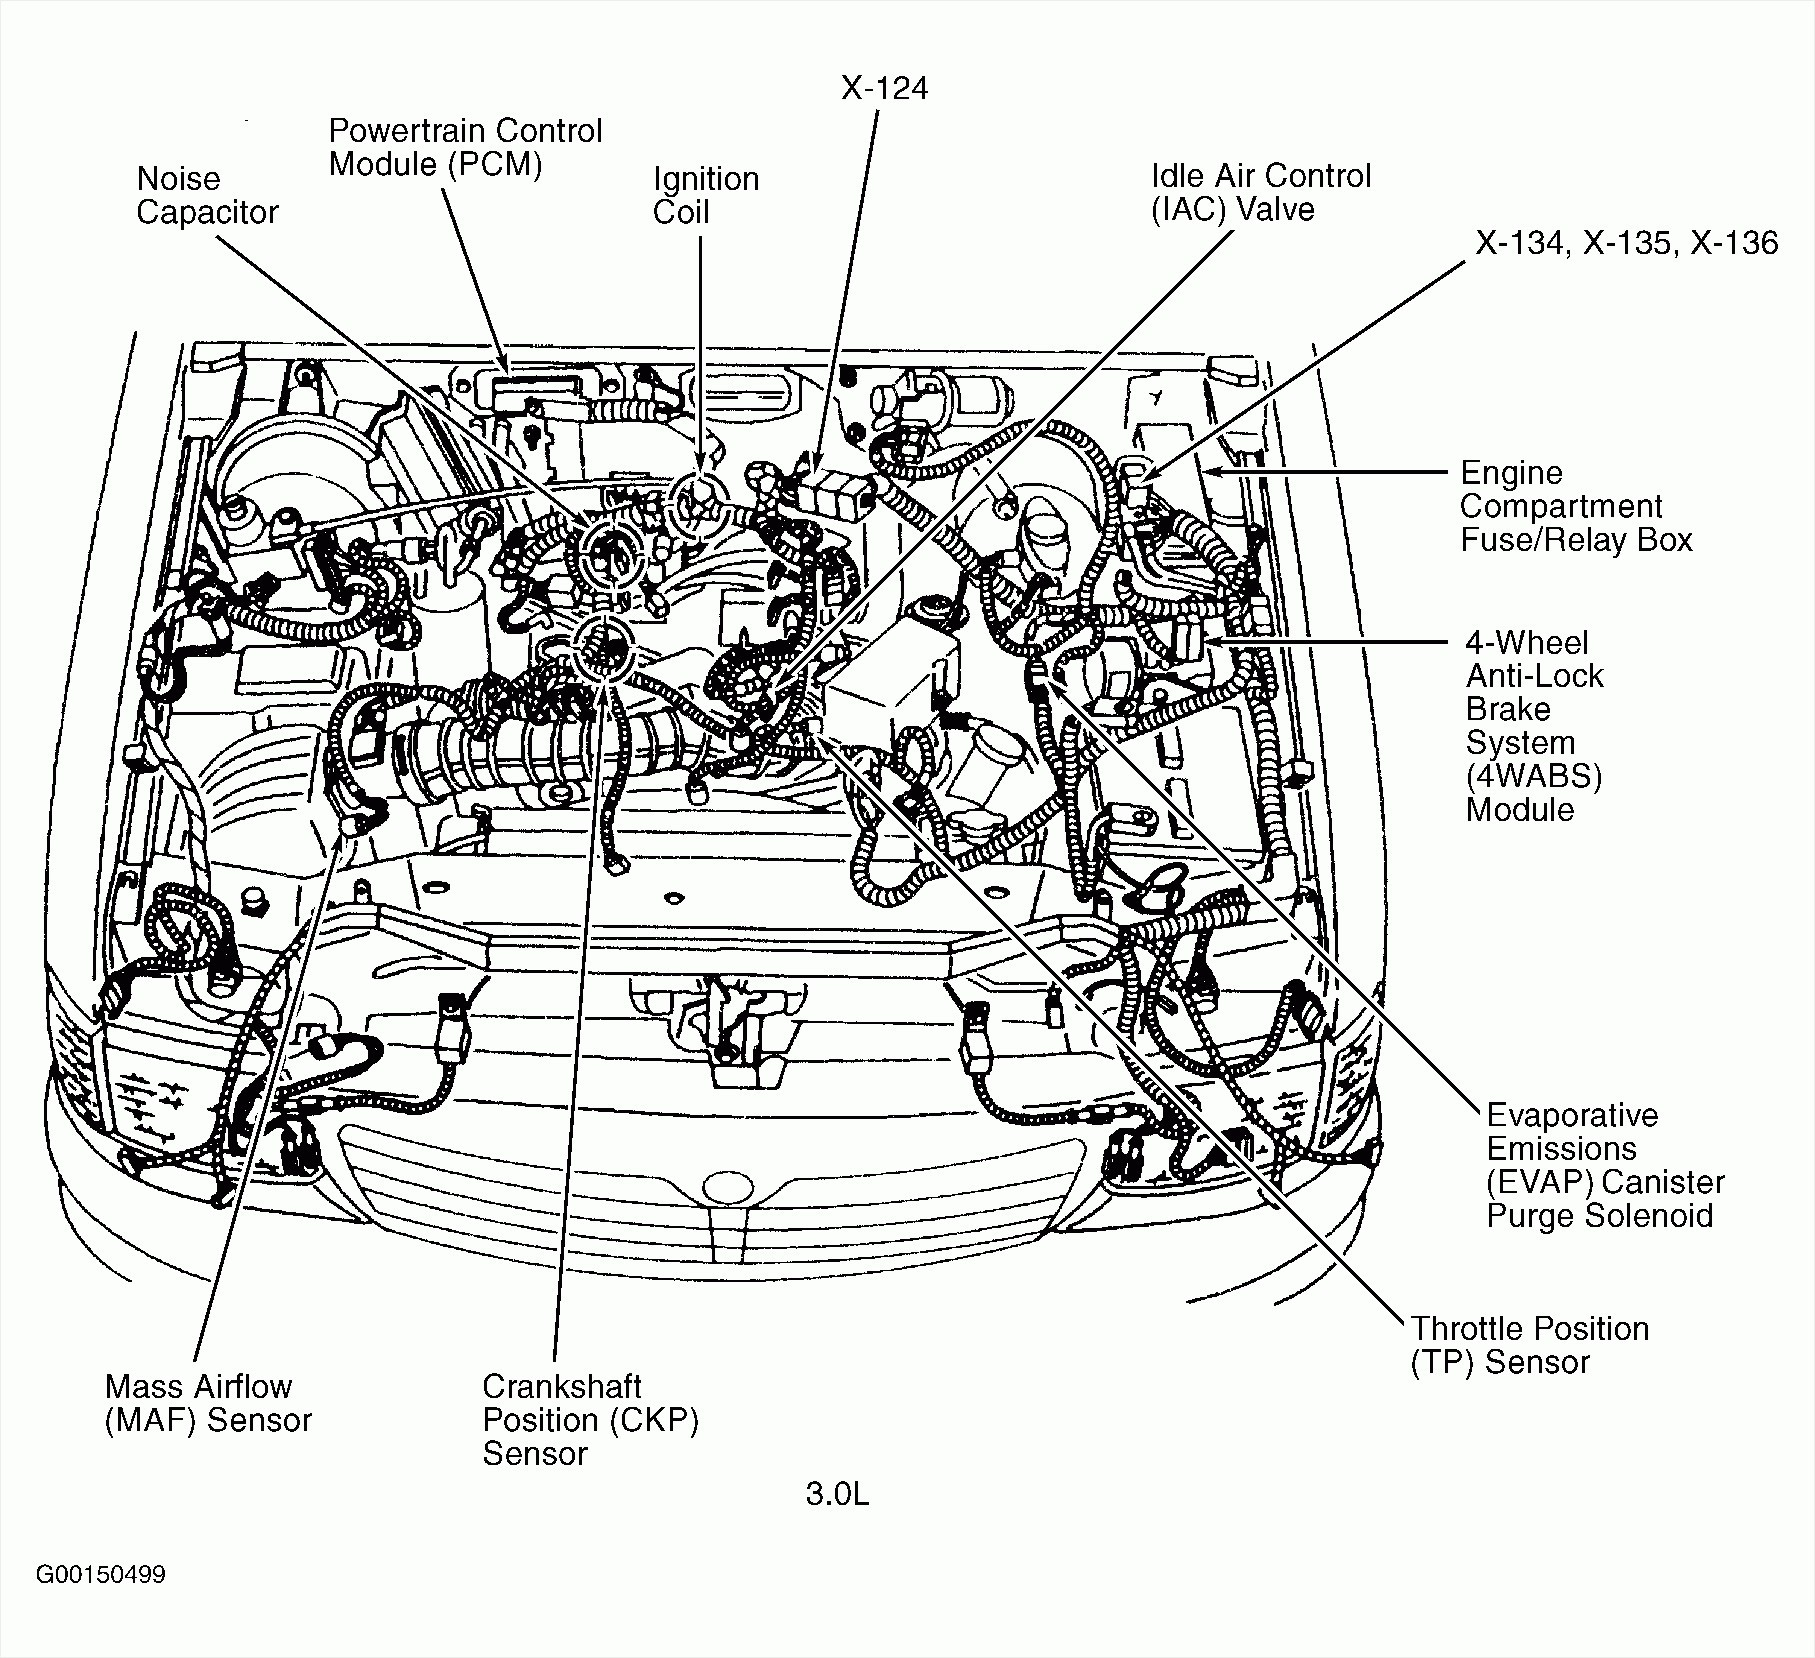 Toyota Vvt I V6 Engine Diagram | Online Wiring Diagram